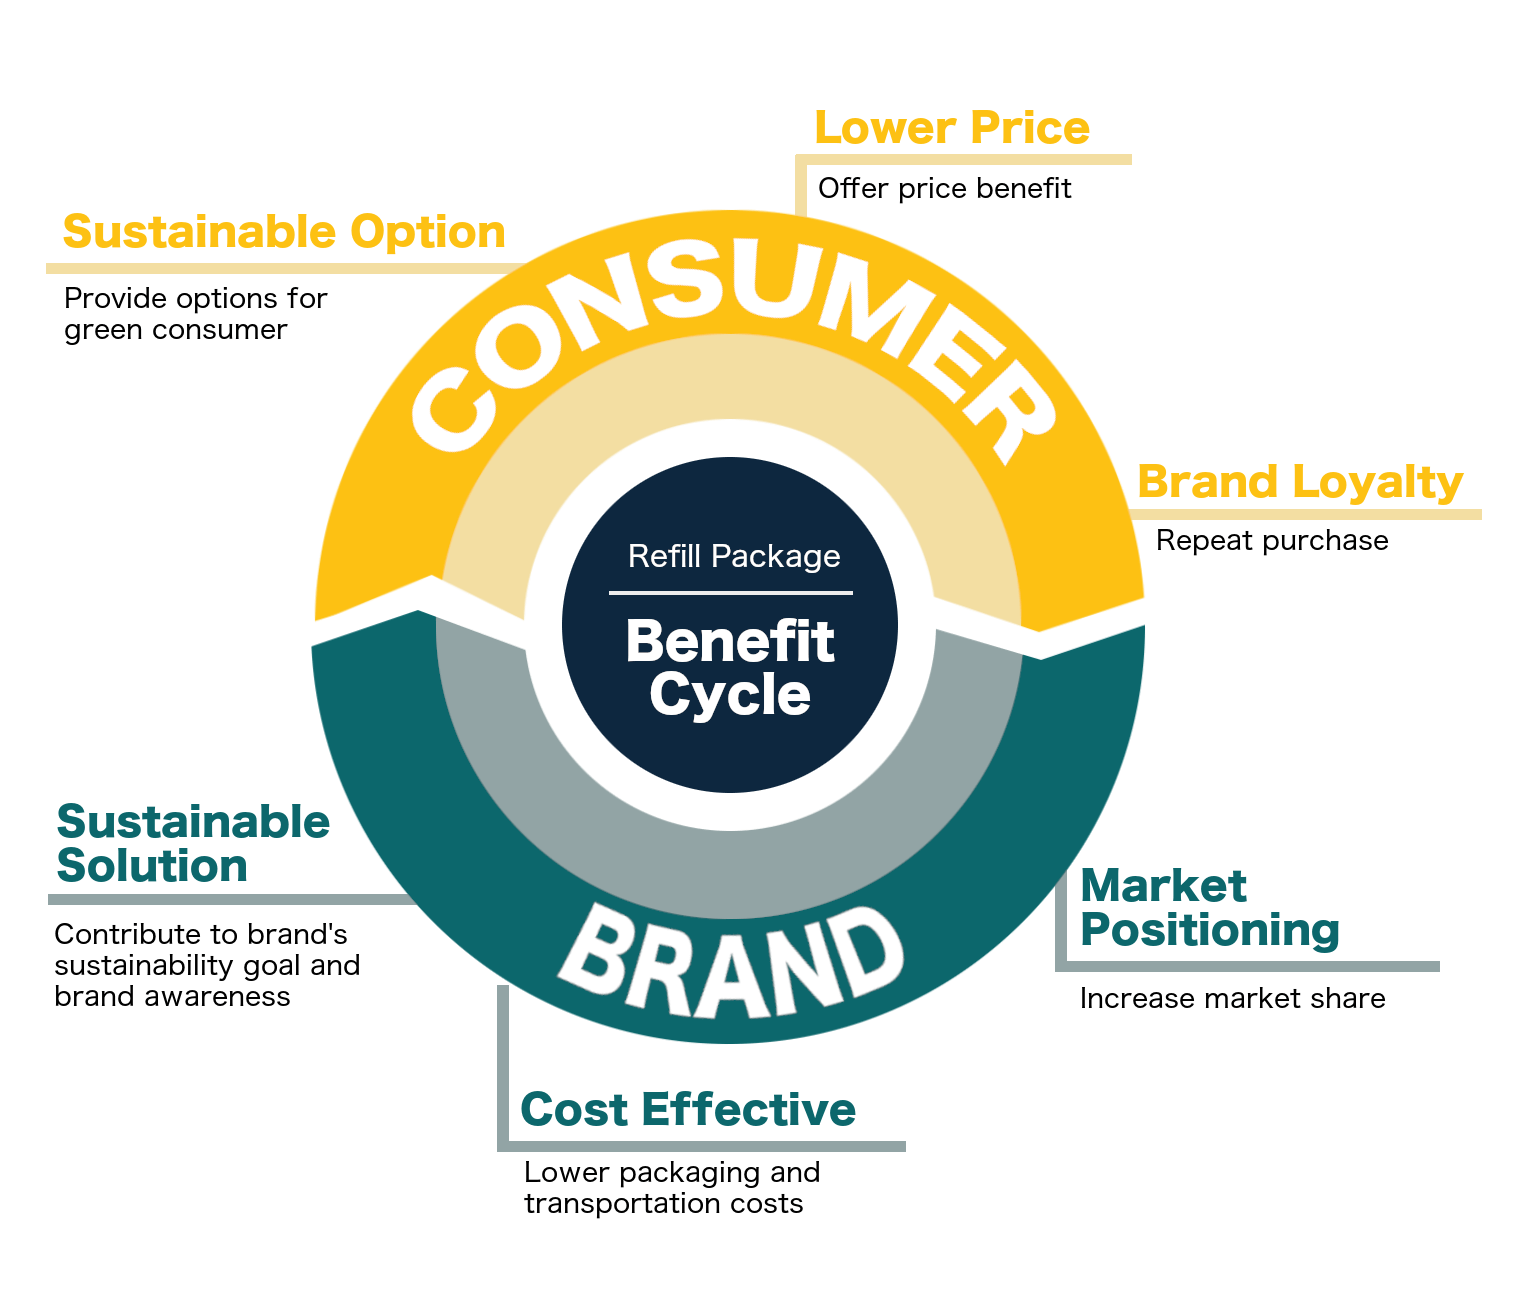 Brand benefit cycle